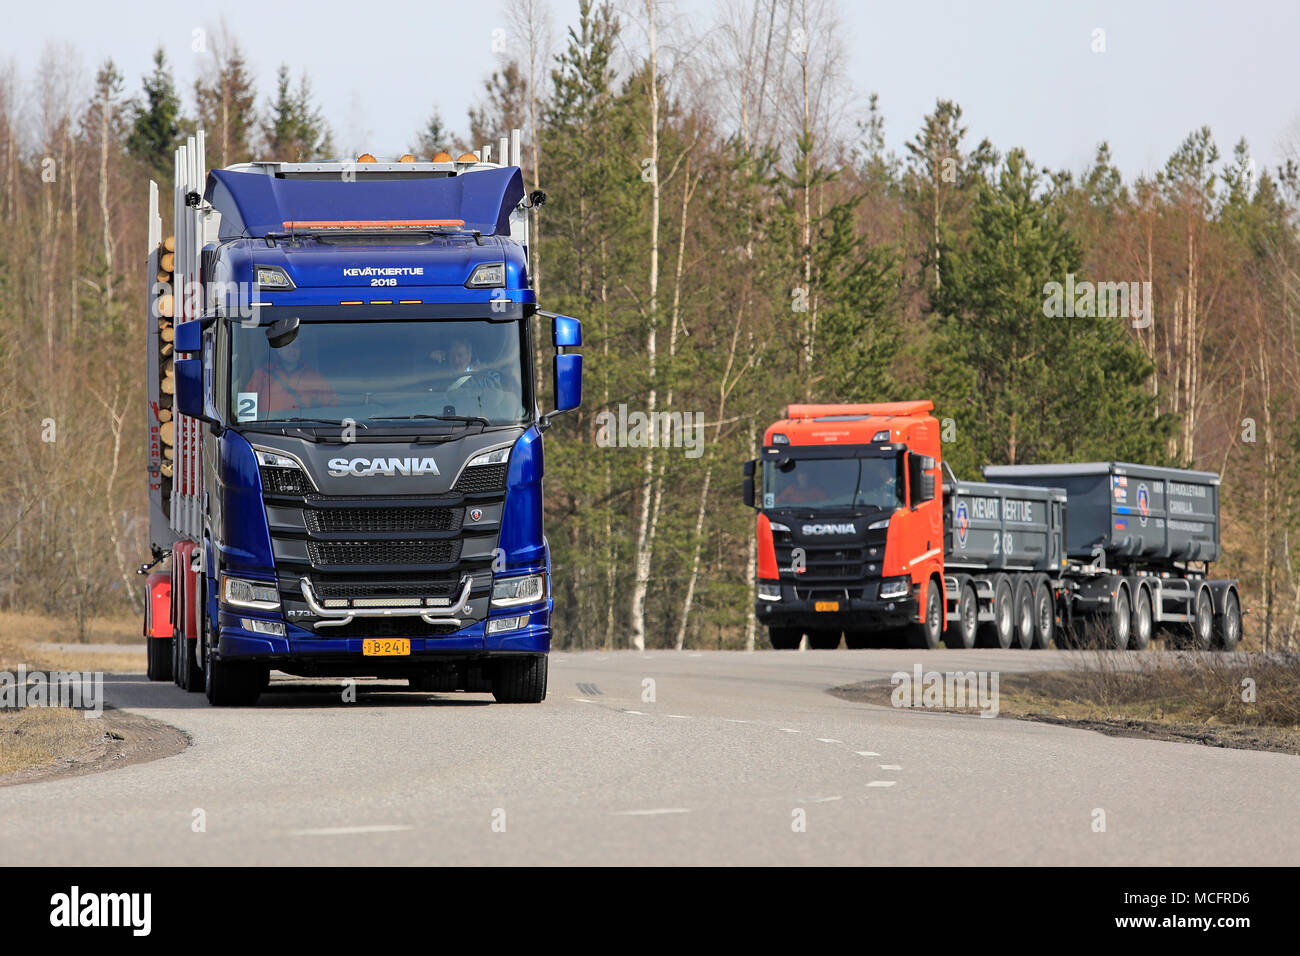 LIETO, FINLAND - APRIL 12, 2018: Blue Scania R730 logging truck and R650 XT gravel combination on test drive during Scania Tour 2018 in Turku. - Stock Image